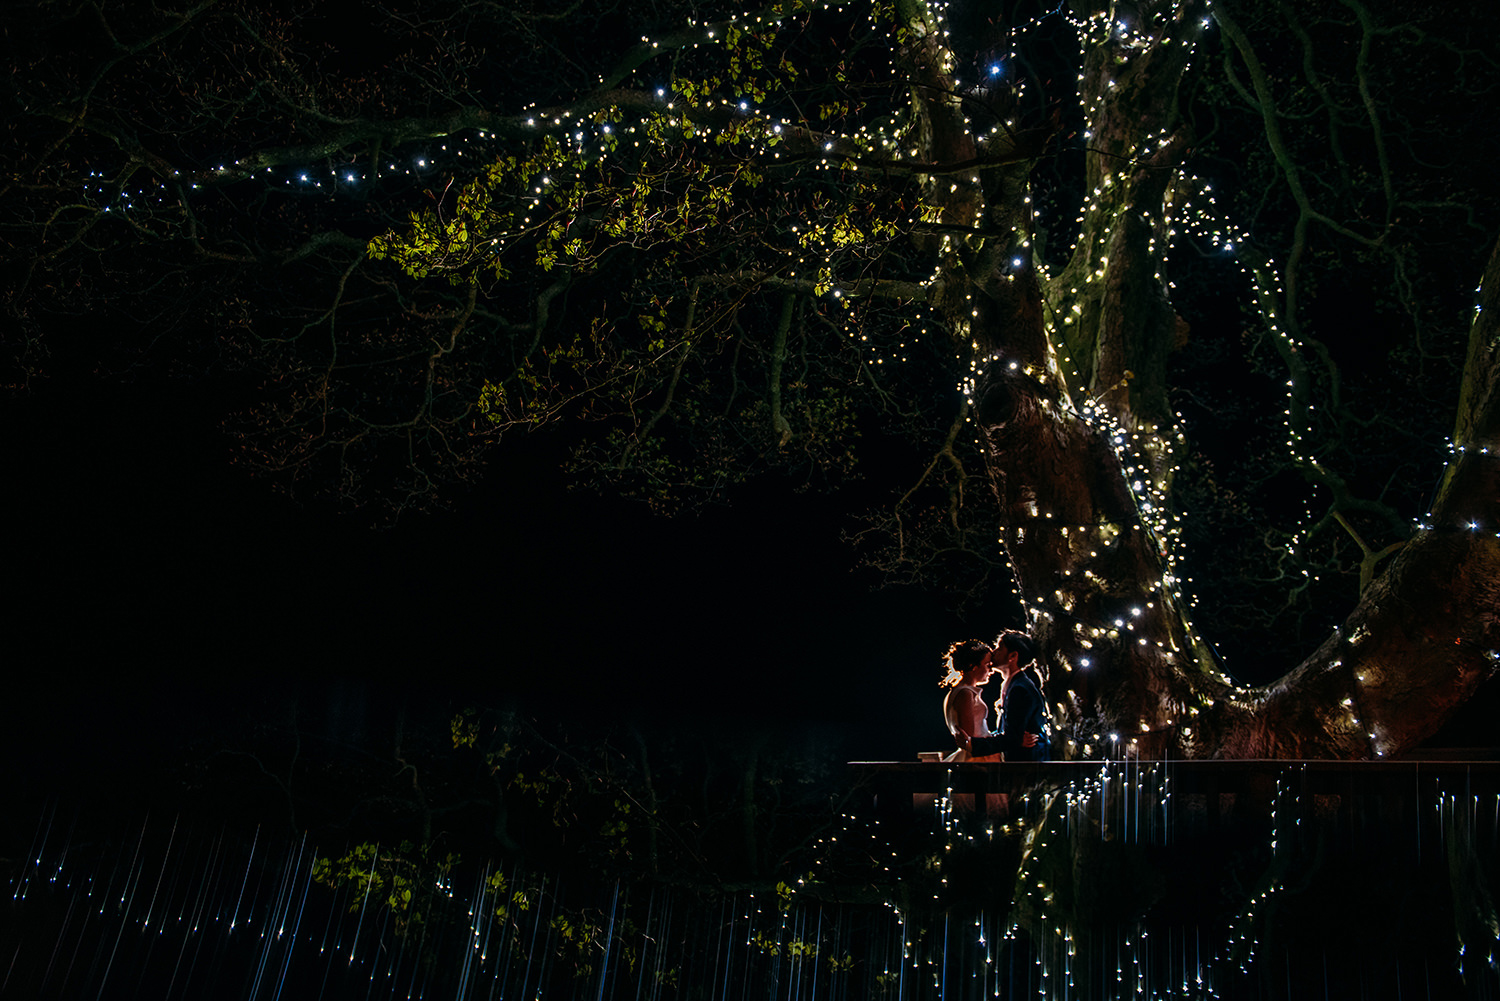 bride and groom under a big fairy-lit tree at night